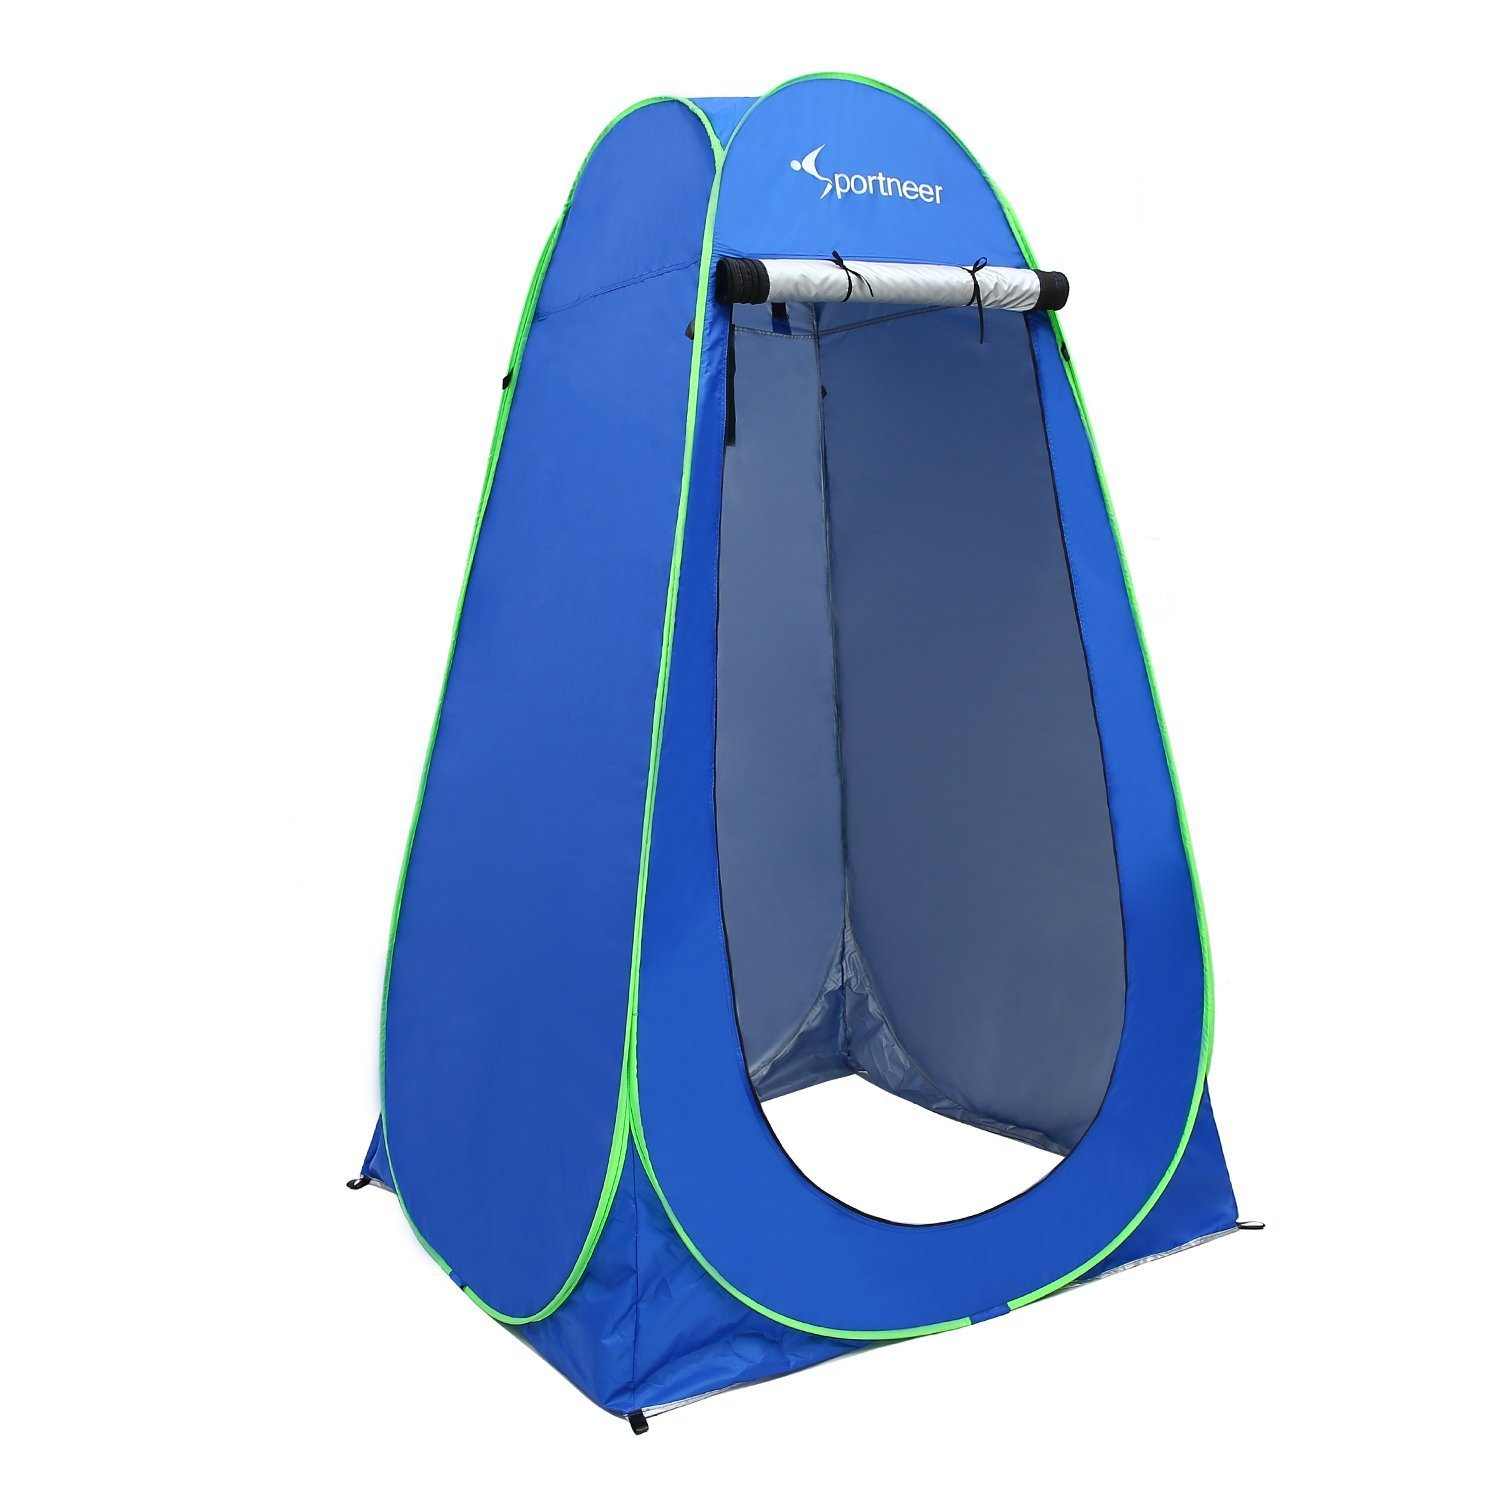 Sportneer Pop Up Camping Shower Tent